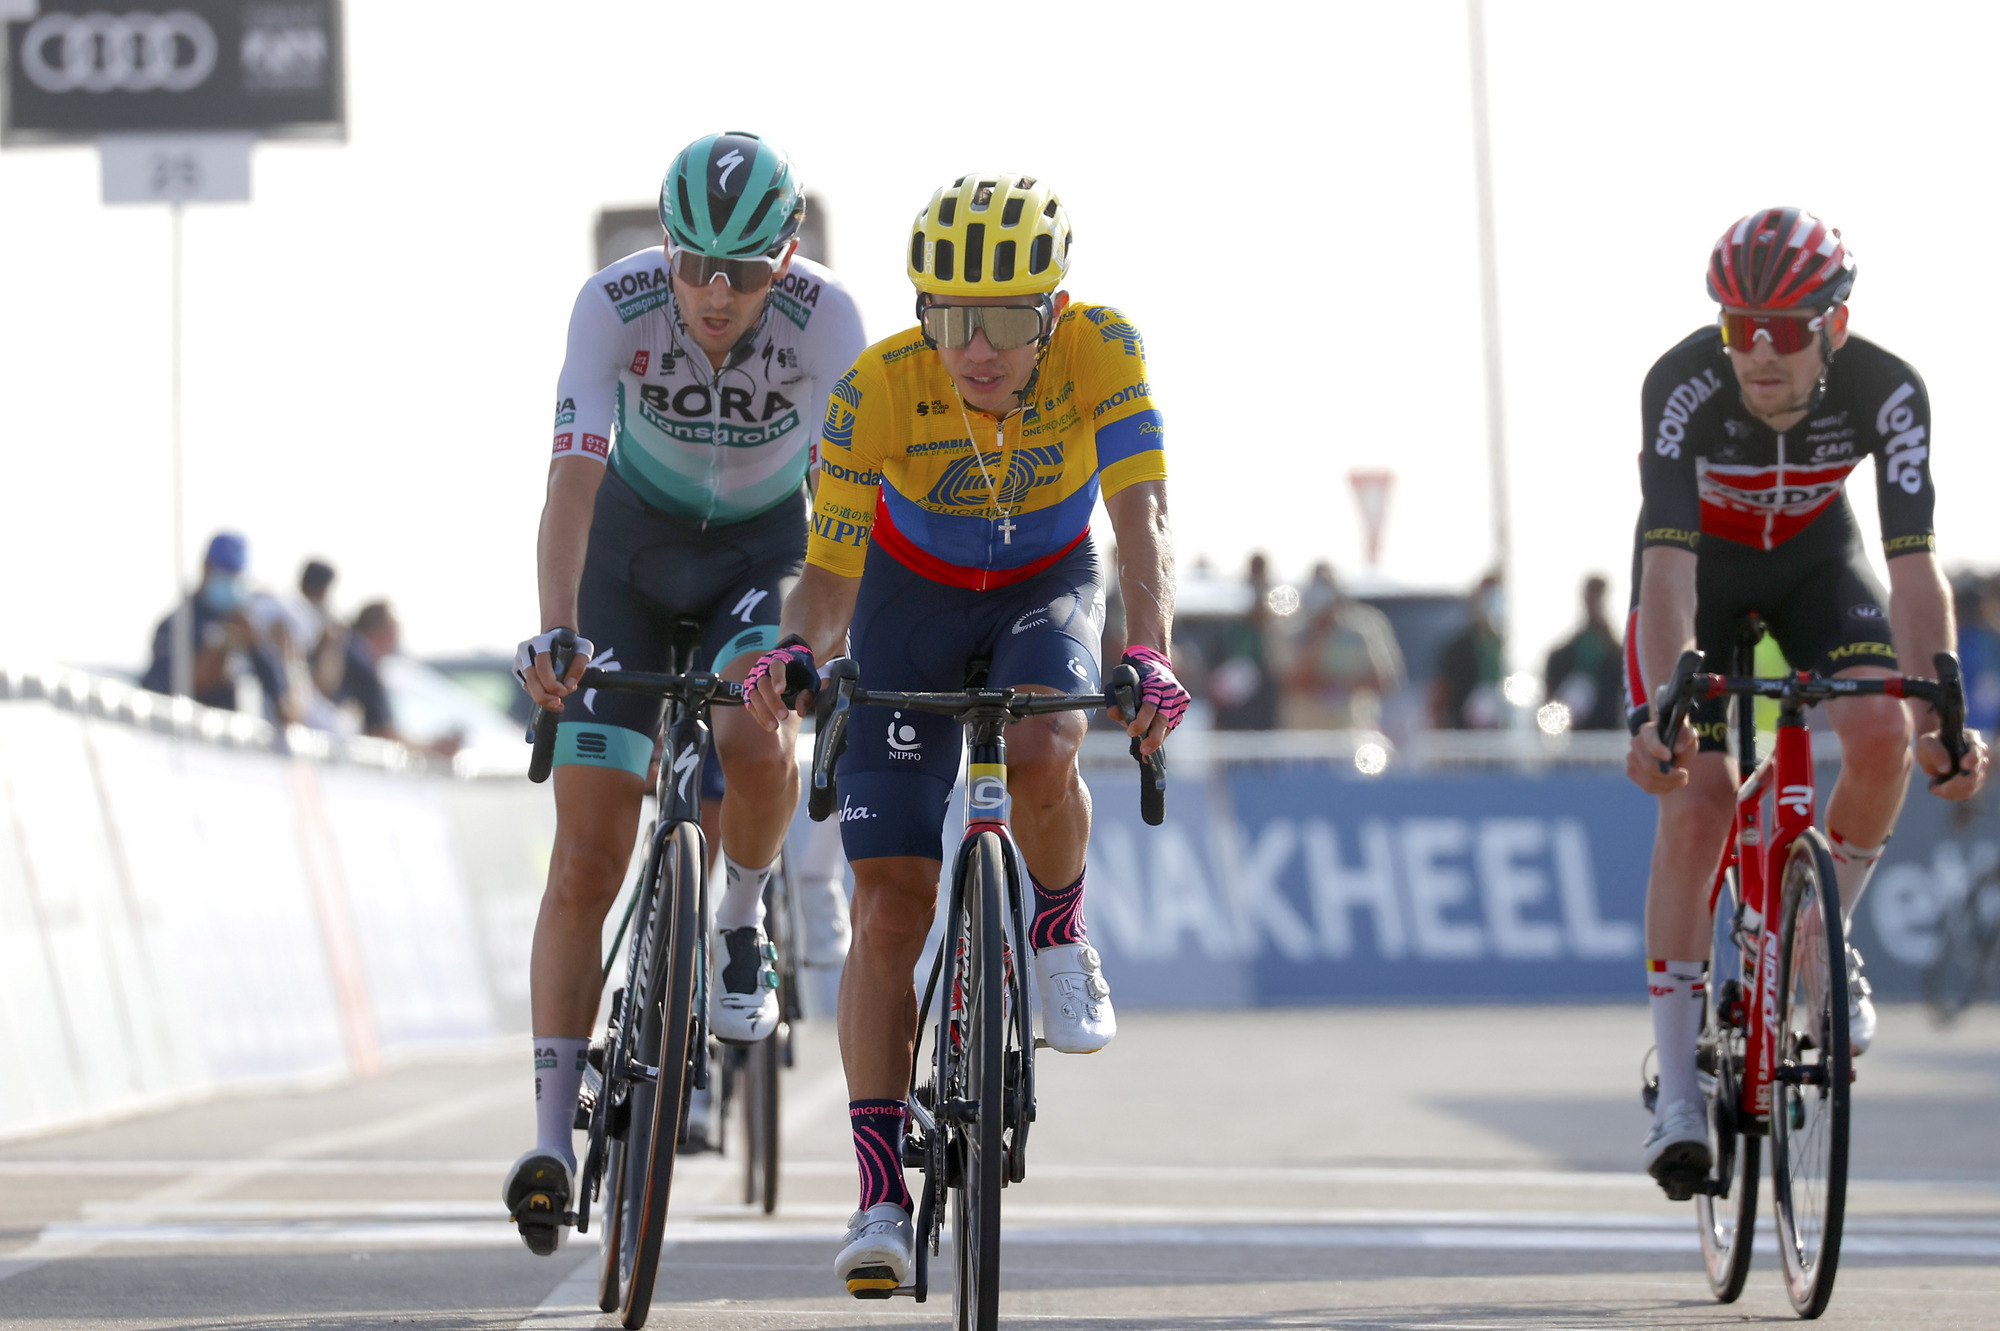 The chase group finishes stage 3 at the UAE Tour